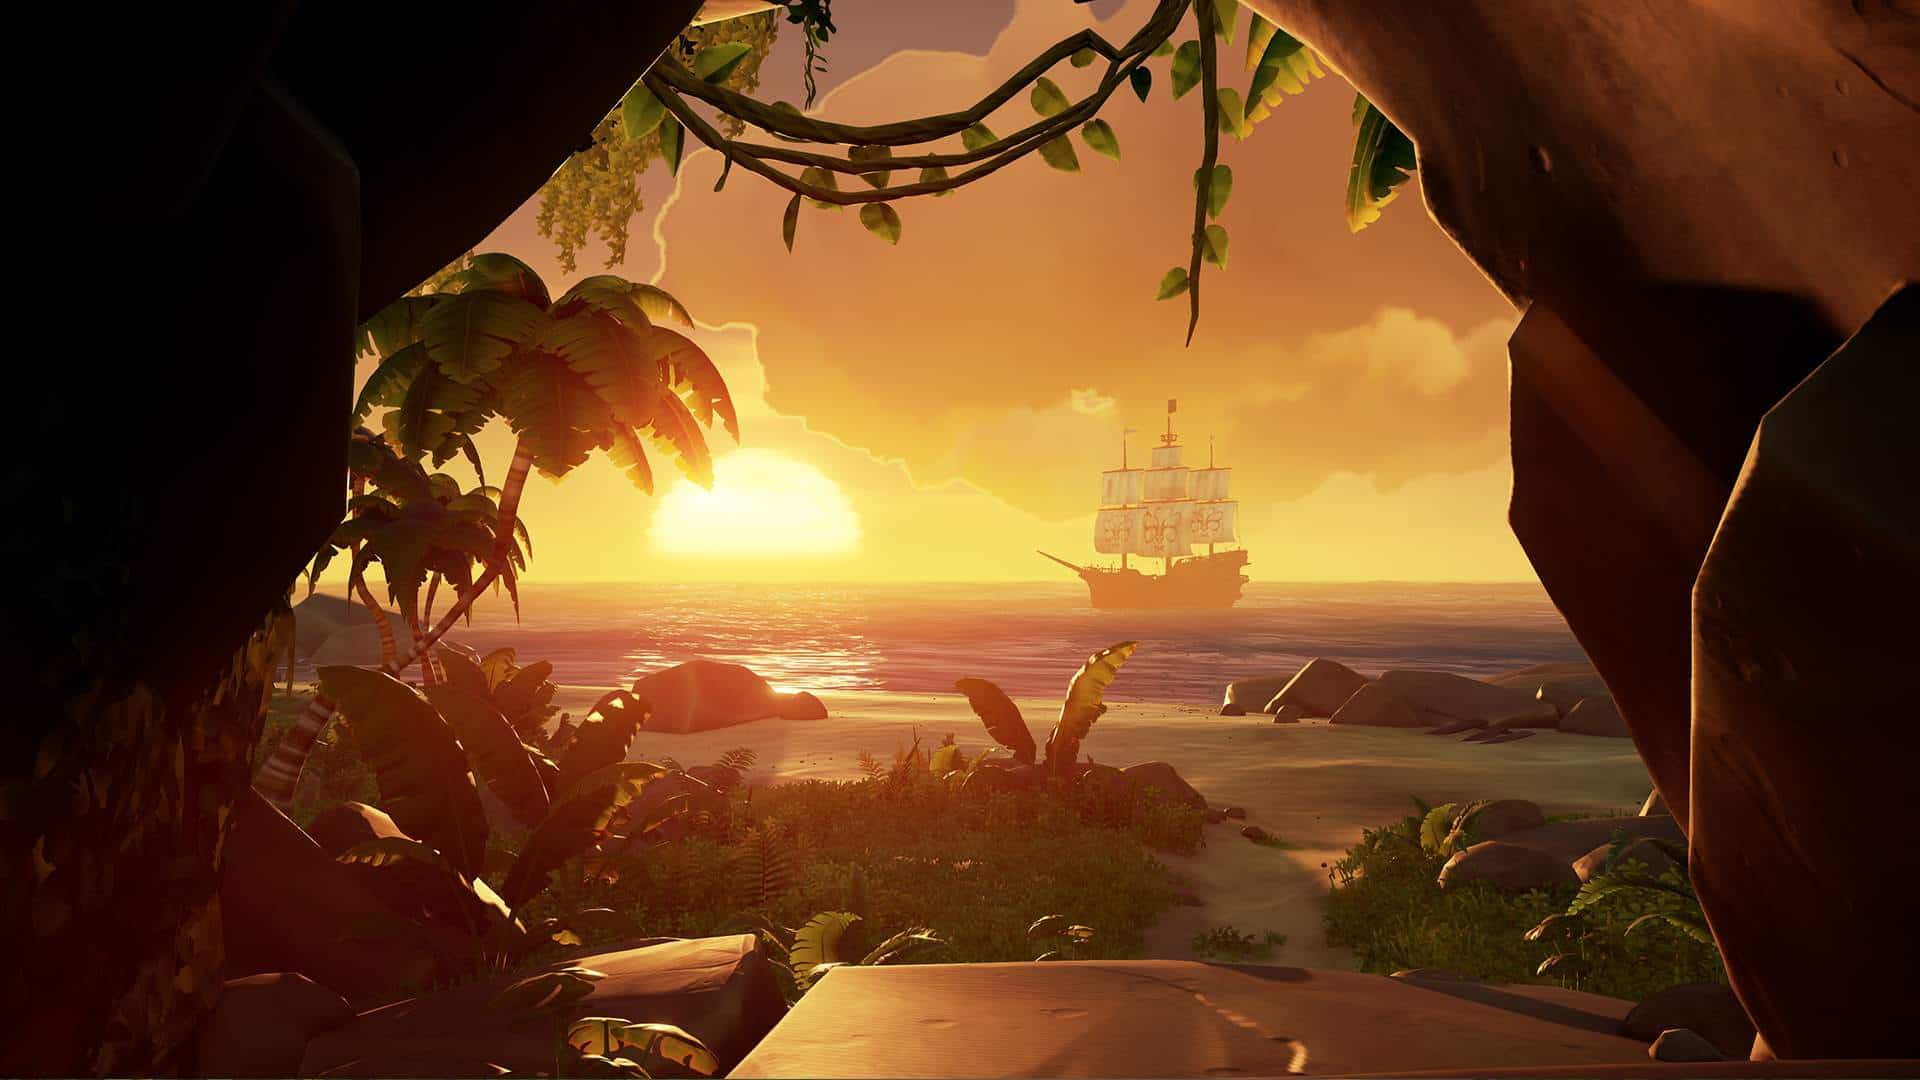 Sea of Thieves Comes Free With Xbox One X Until March 24